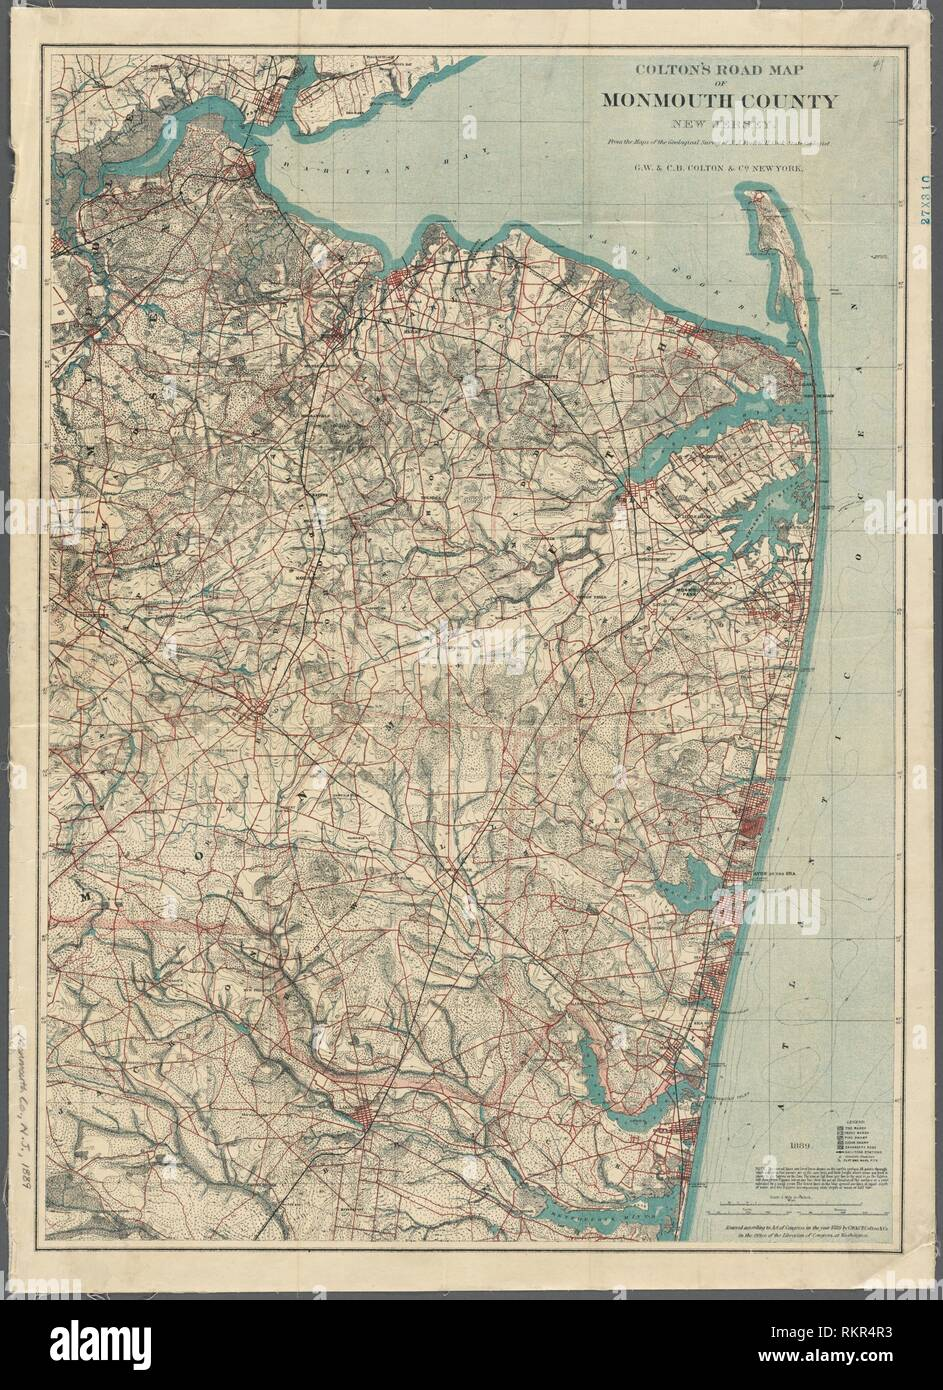 Maps Of Monmouth County Nj : monmouth, county, Colton's, Monmouth, County, Jersey, Additional, Title:, County,, Stock, Photo, Alamy